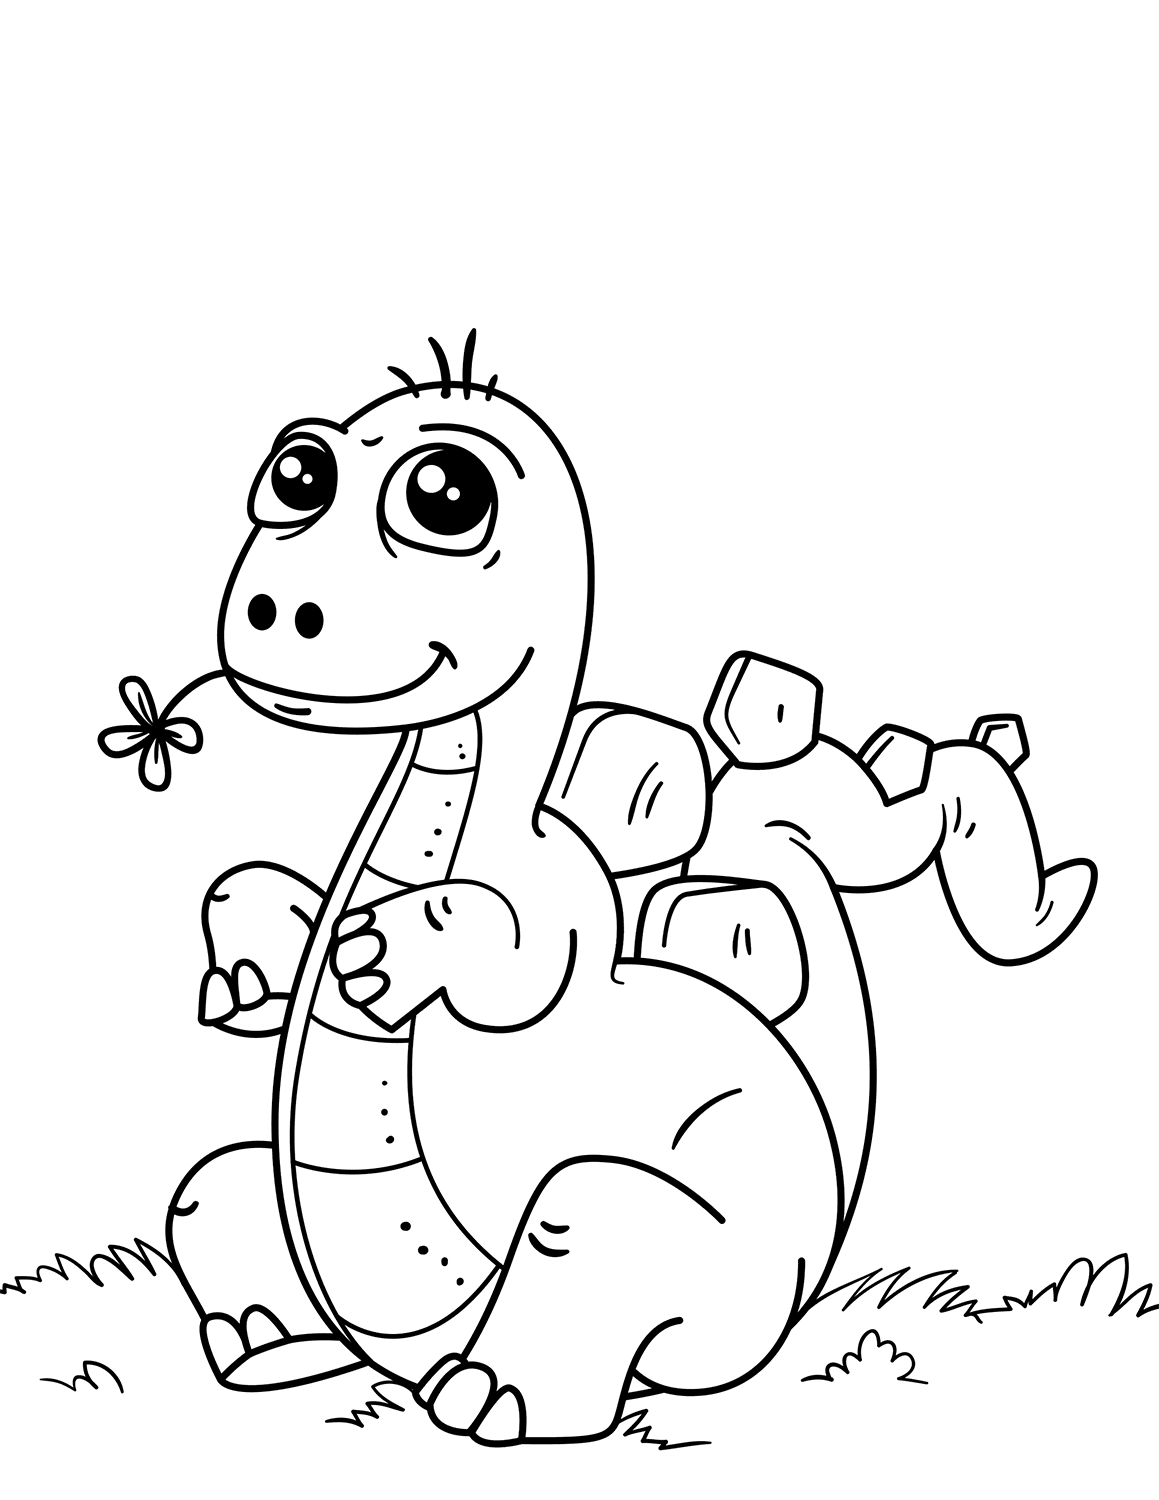 dinosaur coloring image baby dinosaur coloring pages to download and print for free dinosaur image coloring